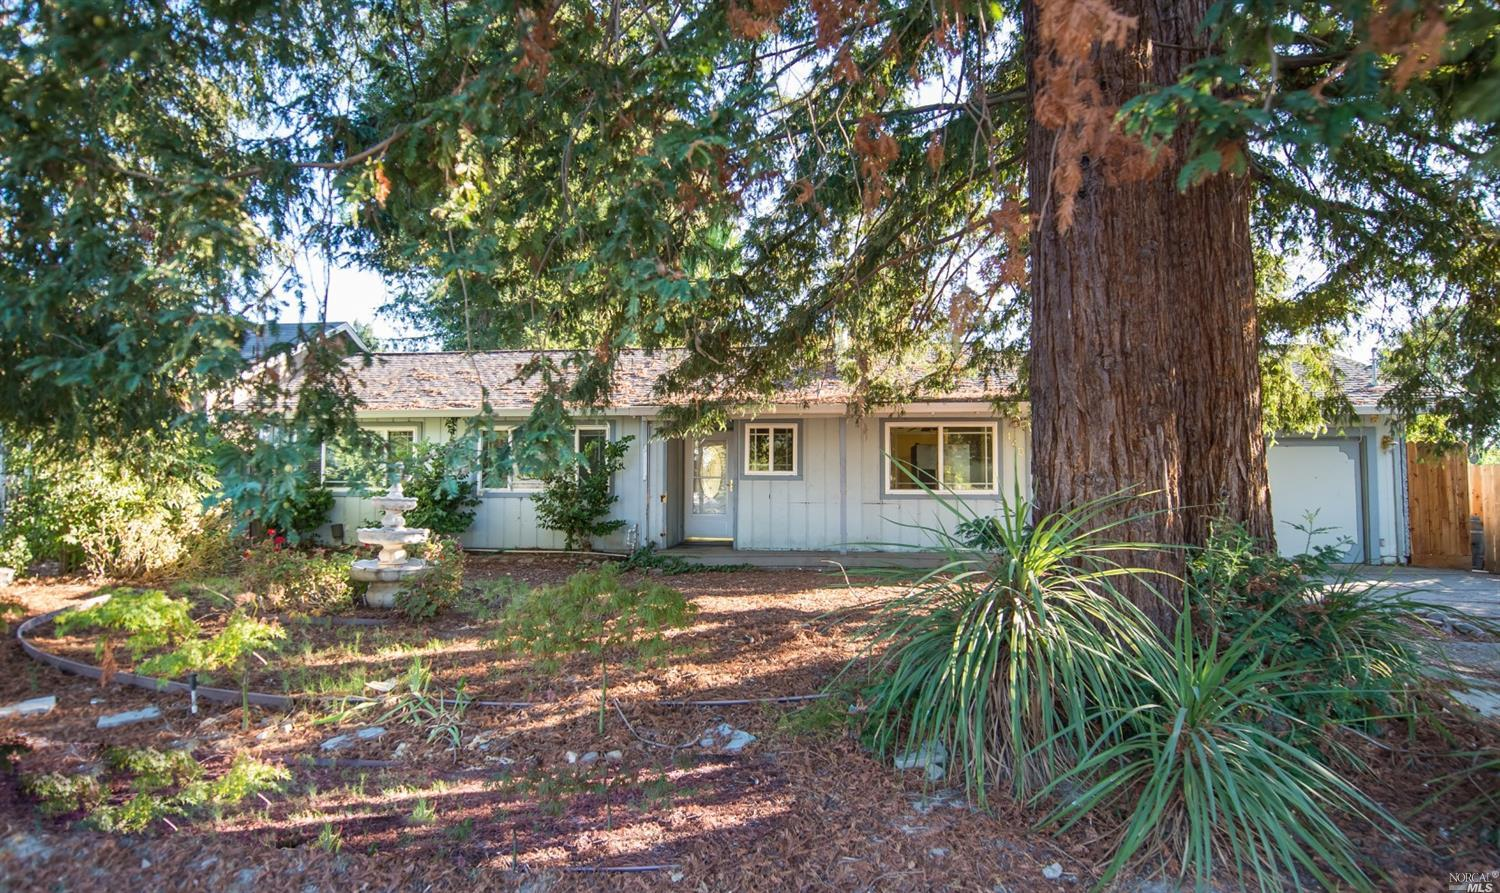 Fixer on great .27 Acre lot with outbuildings, mature landscaping and RV Parking. Newer roof, forced